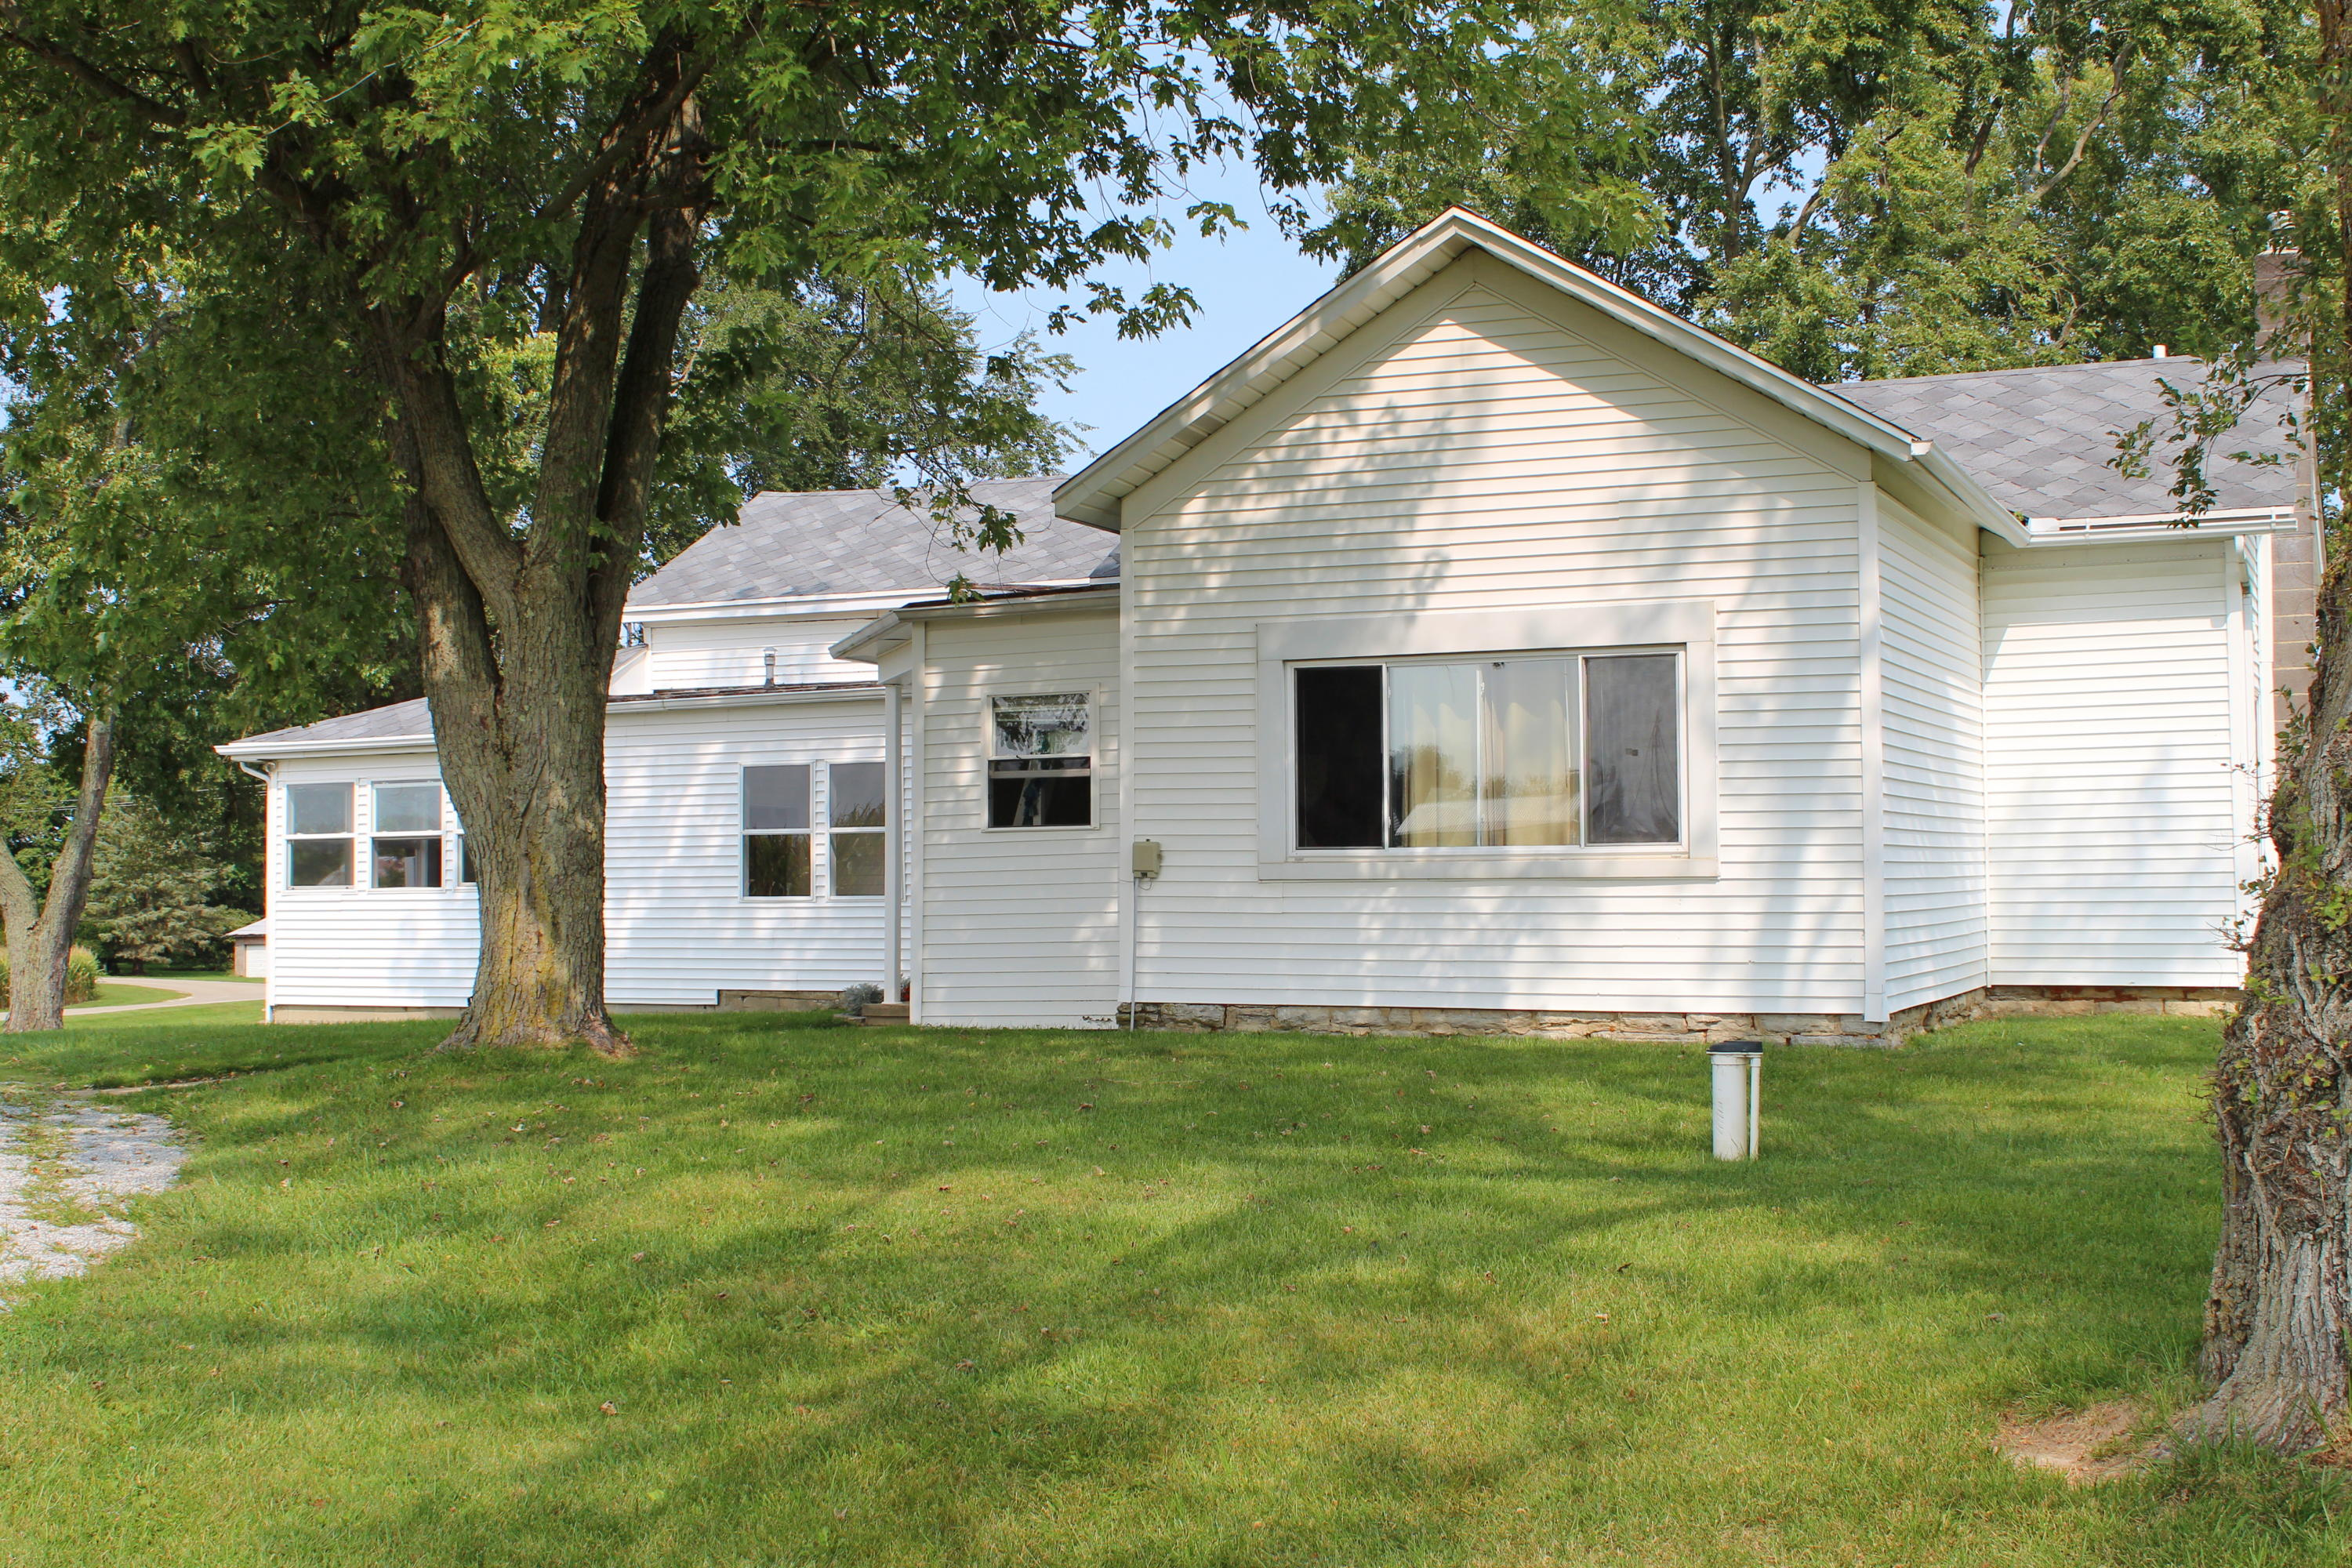 12898 Euphemia Castine Road Property Photo - West Manchester, OH real estate listing